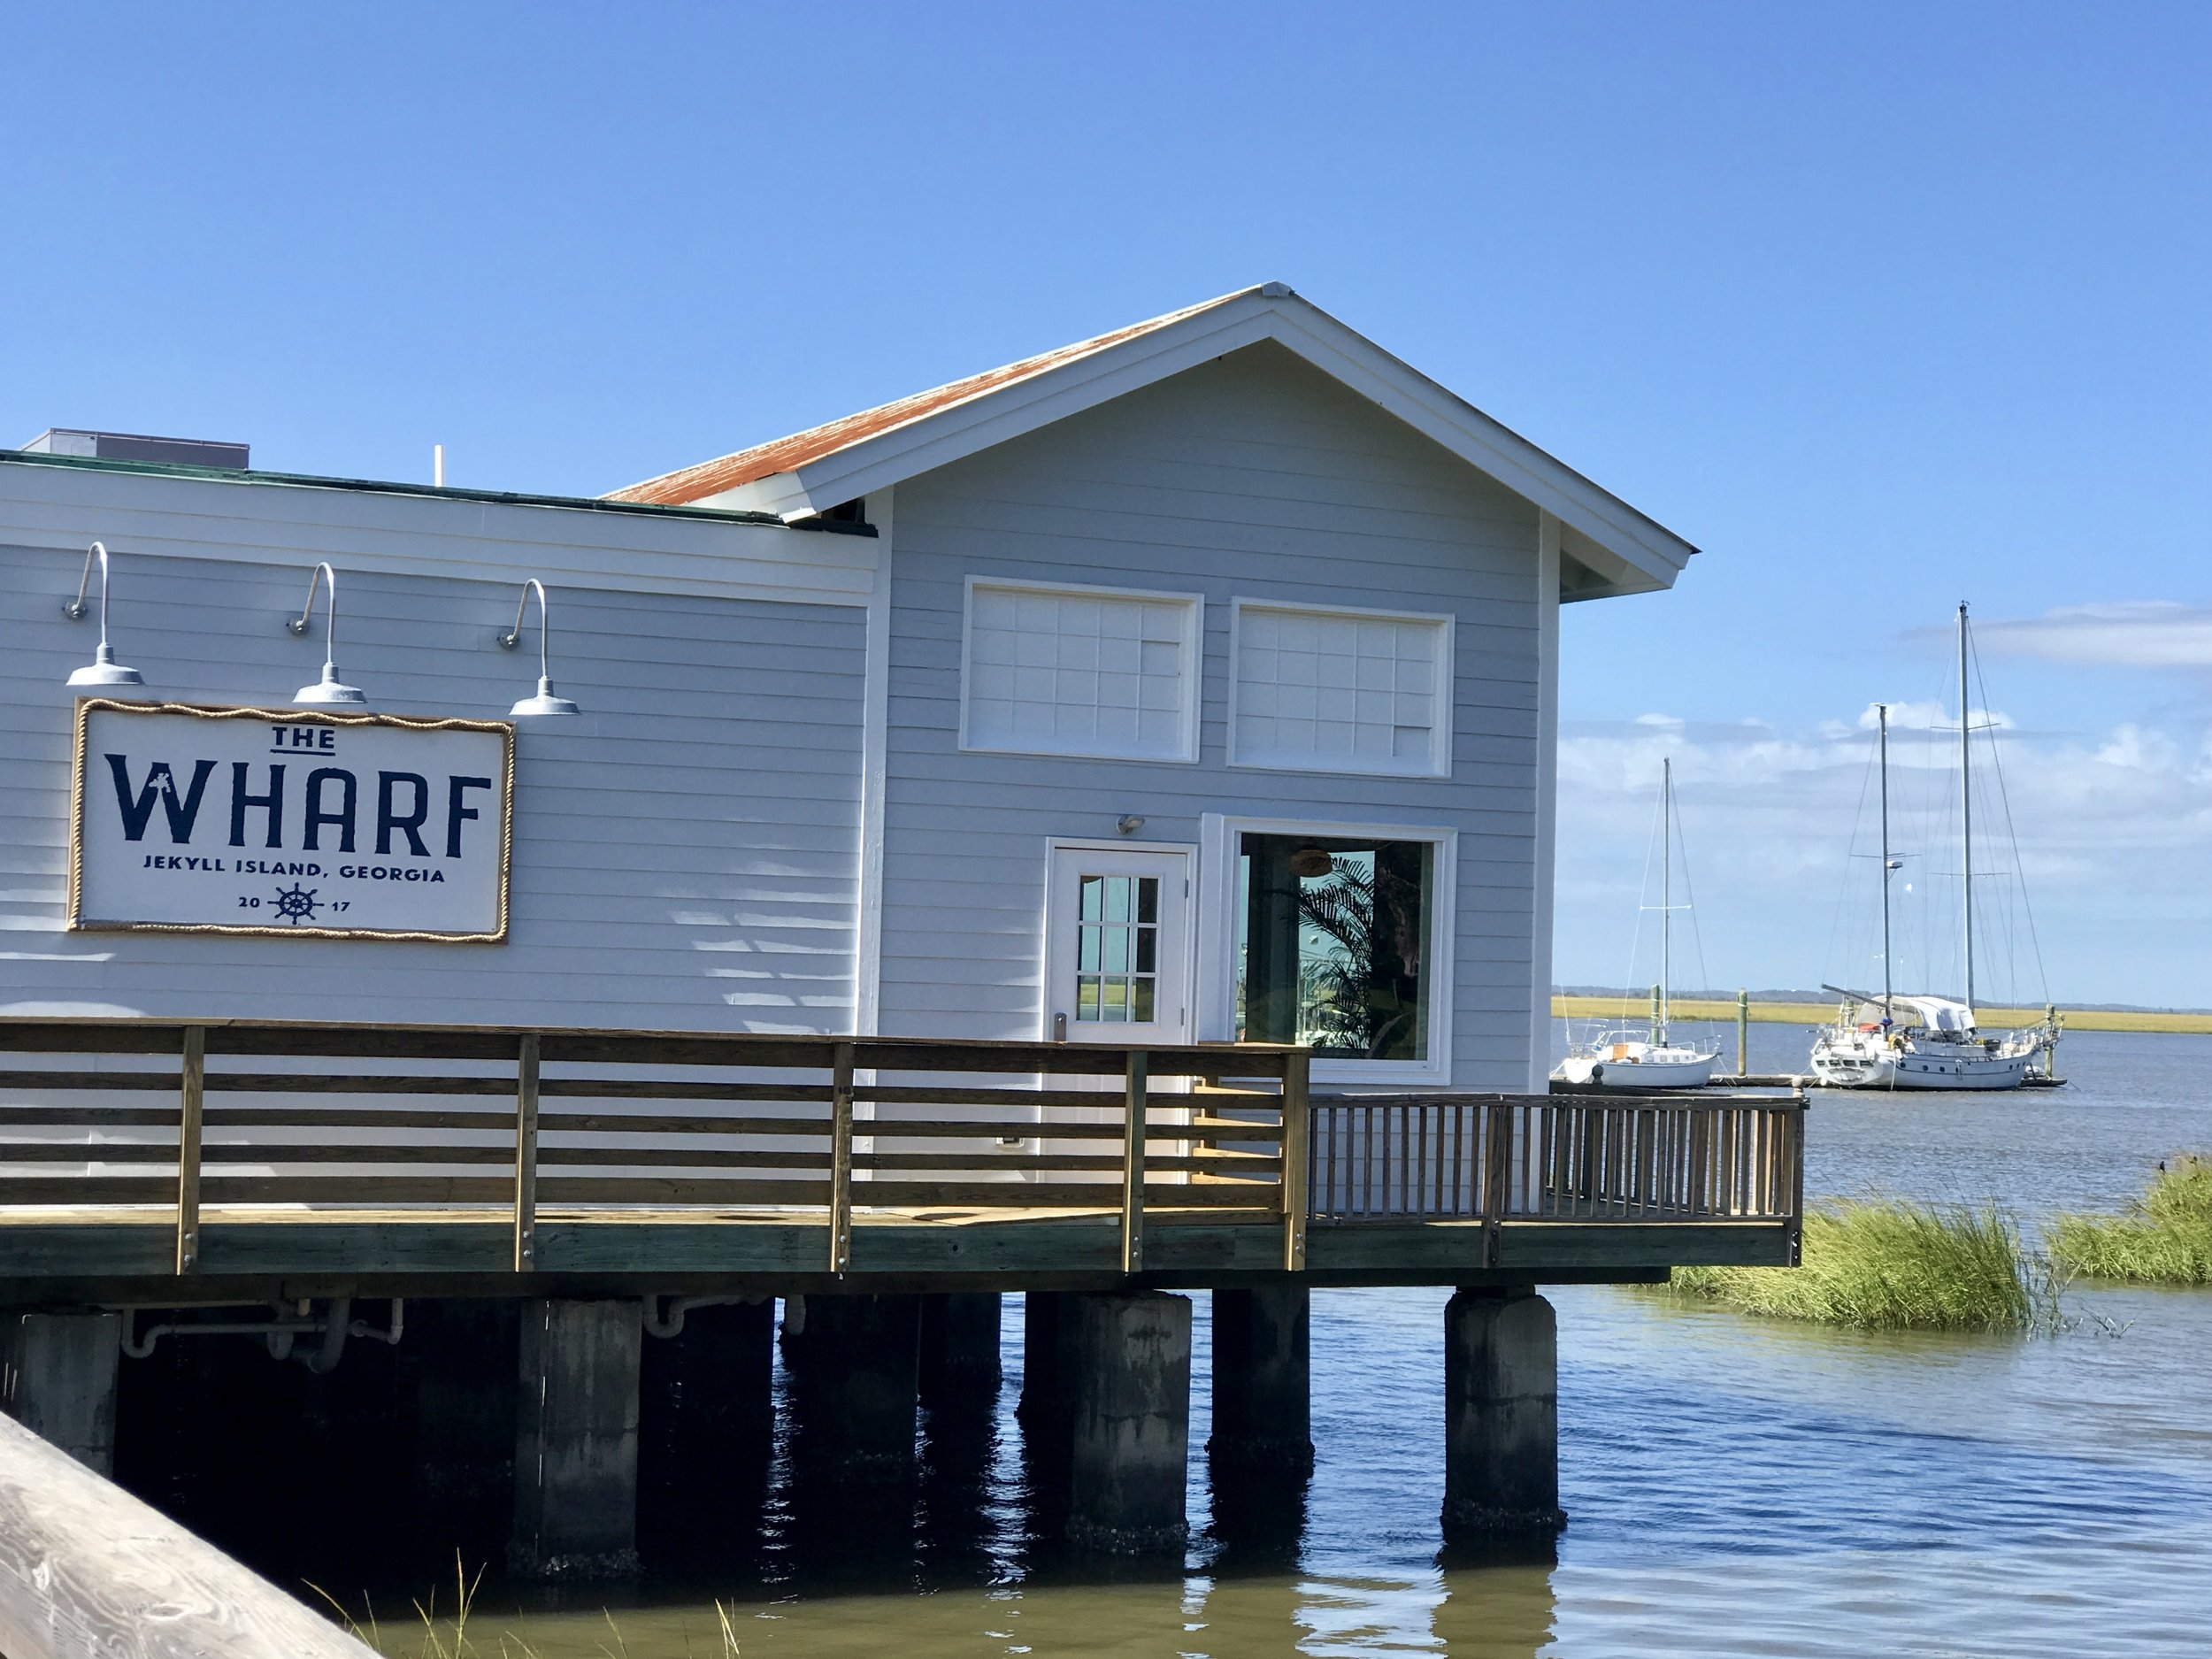 View of the Wharf as you approach.